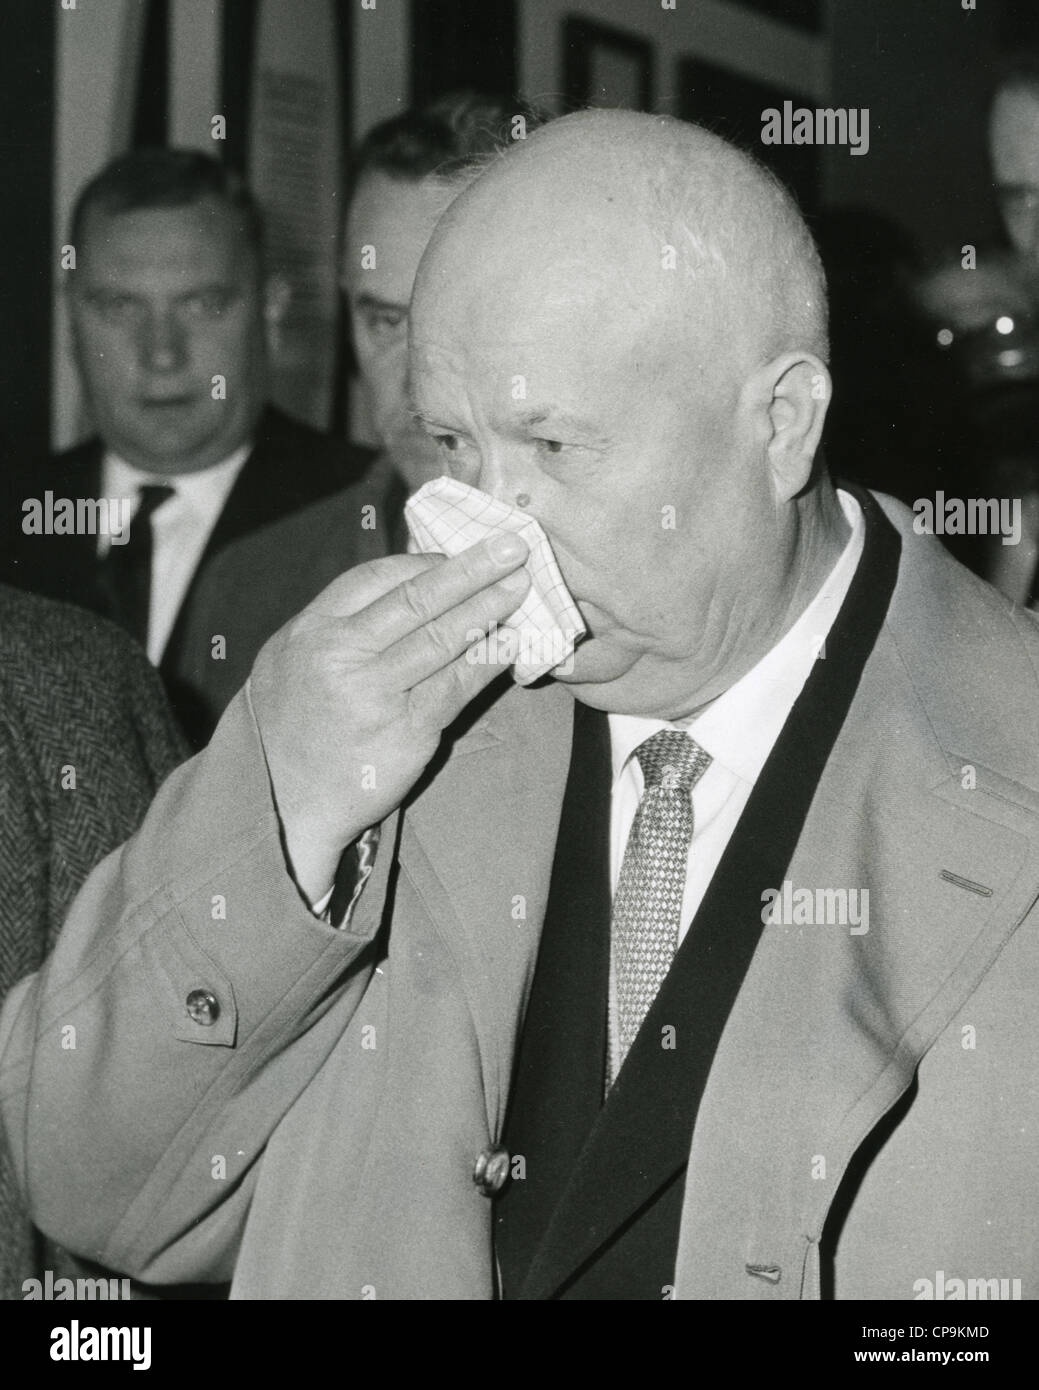 NIKITA KHRUSHCHEV (1894-1971) Soviet Russian politician in 1961. - Stock Image